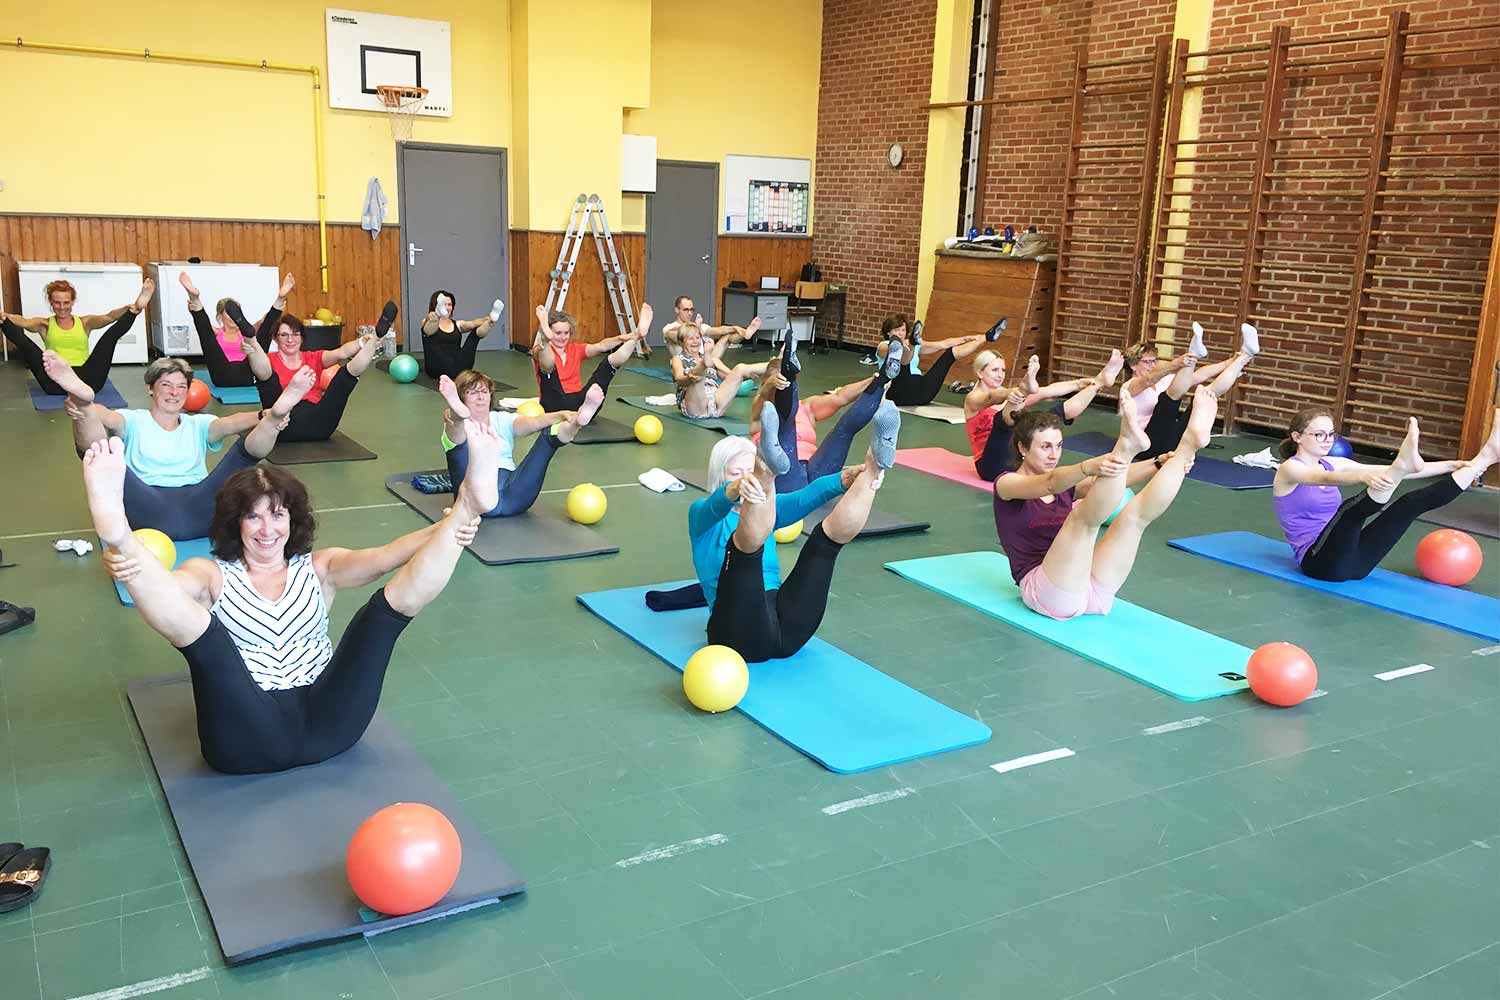 cours pilates huy